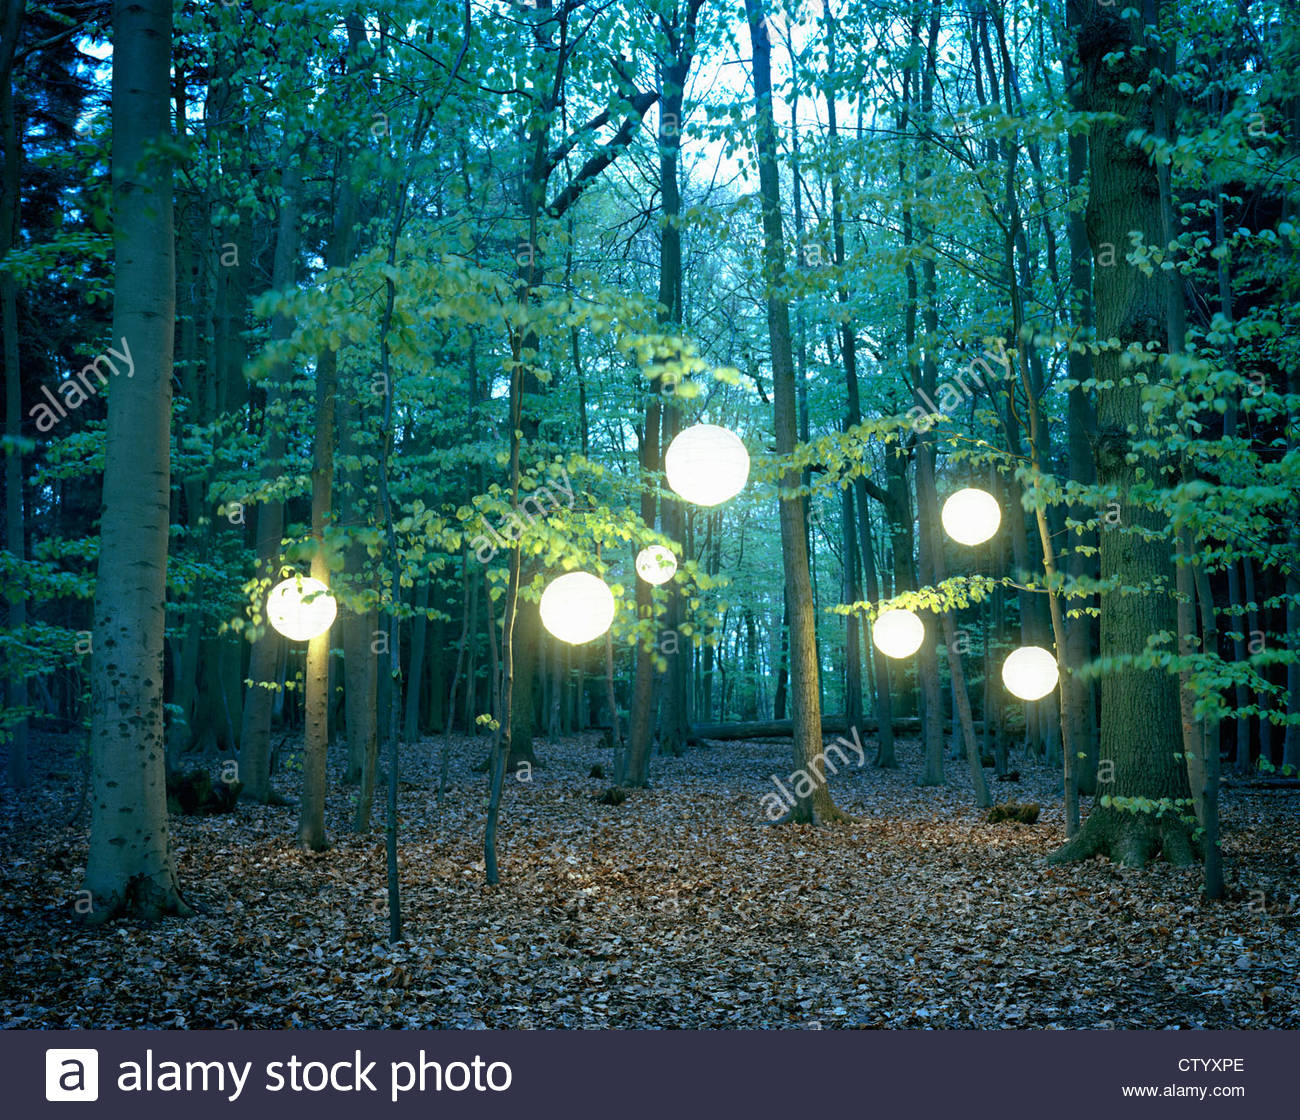 Lanterns hanging from trees in forest - Stock Image